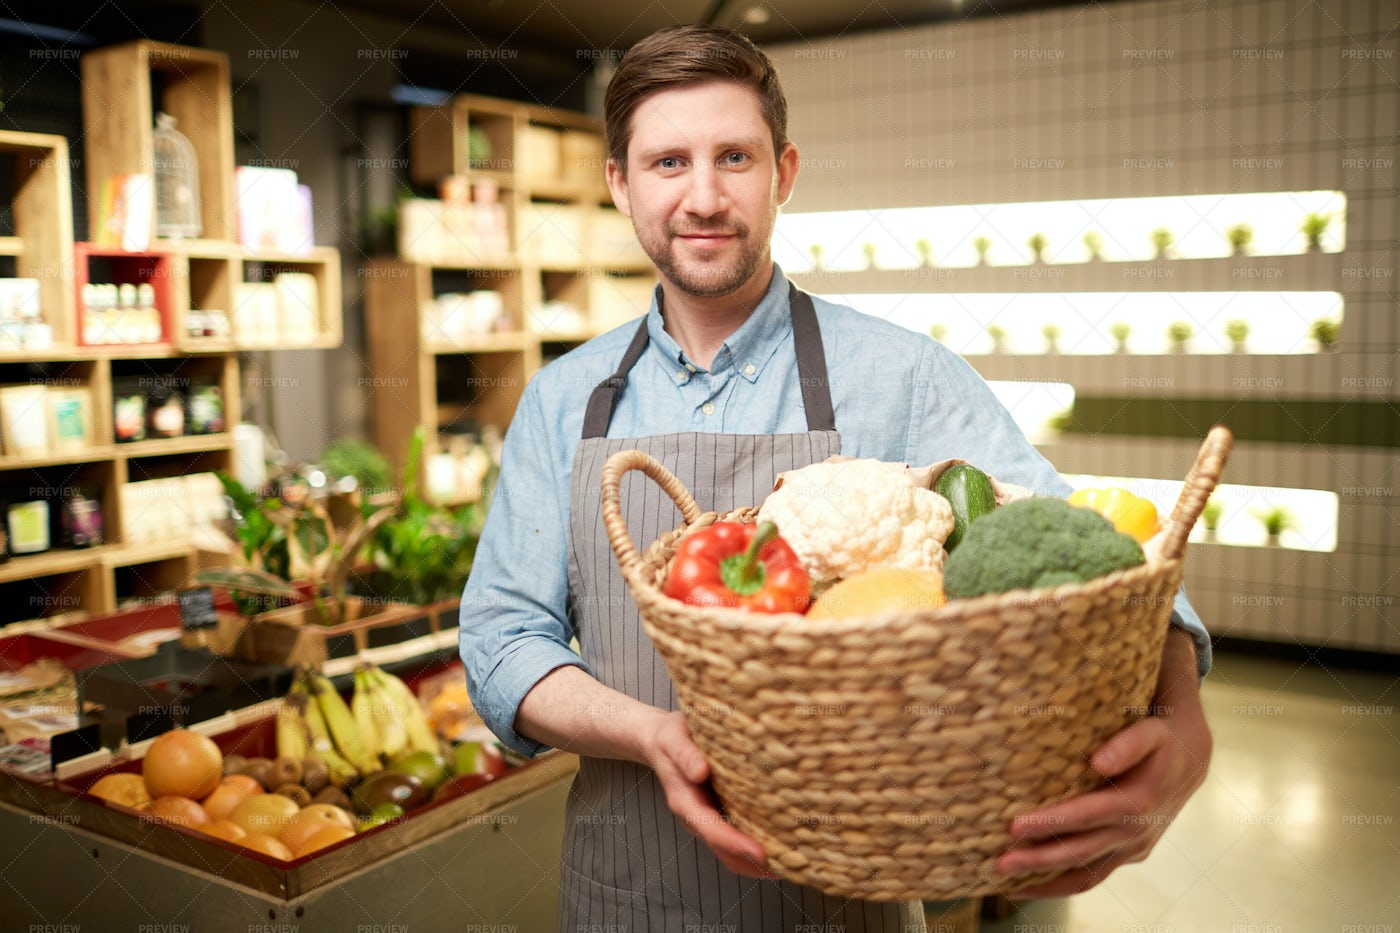 Man With Vegetables: Stock Photos